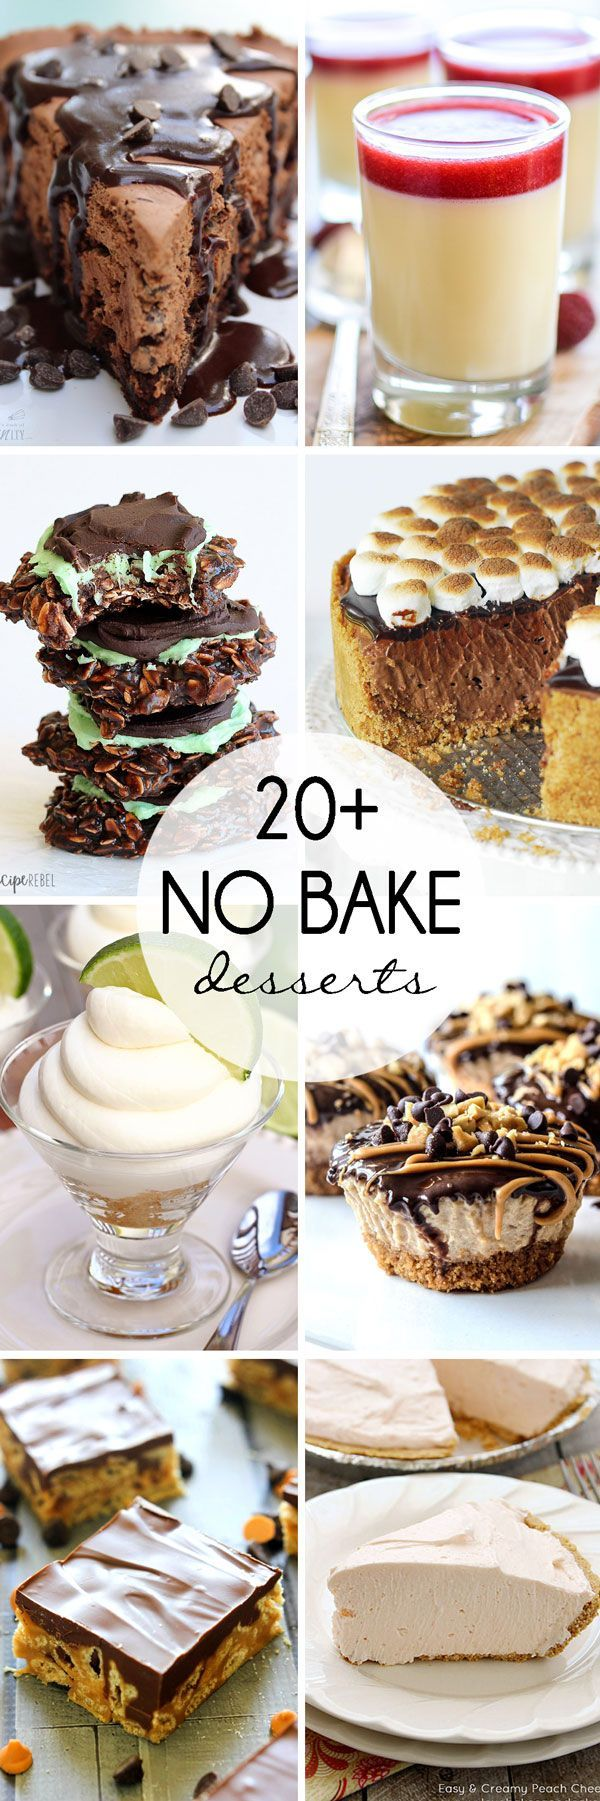 20 no bake desserts for summer oven ice cream treats and 20 no bake desserts for summer forumfinder